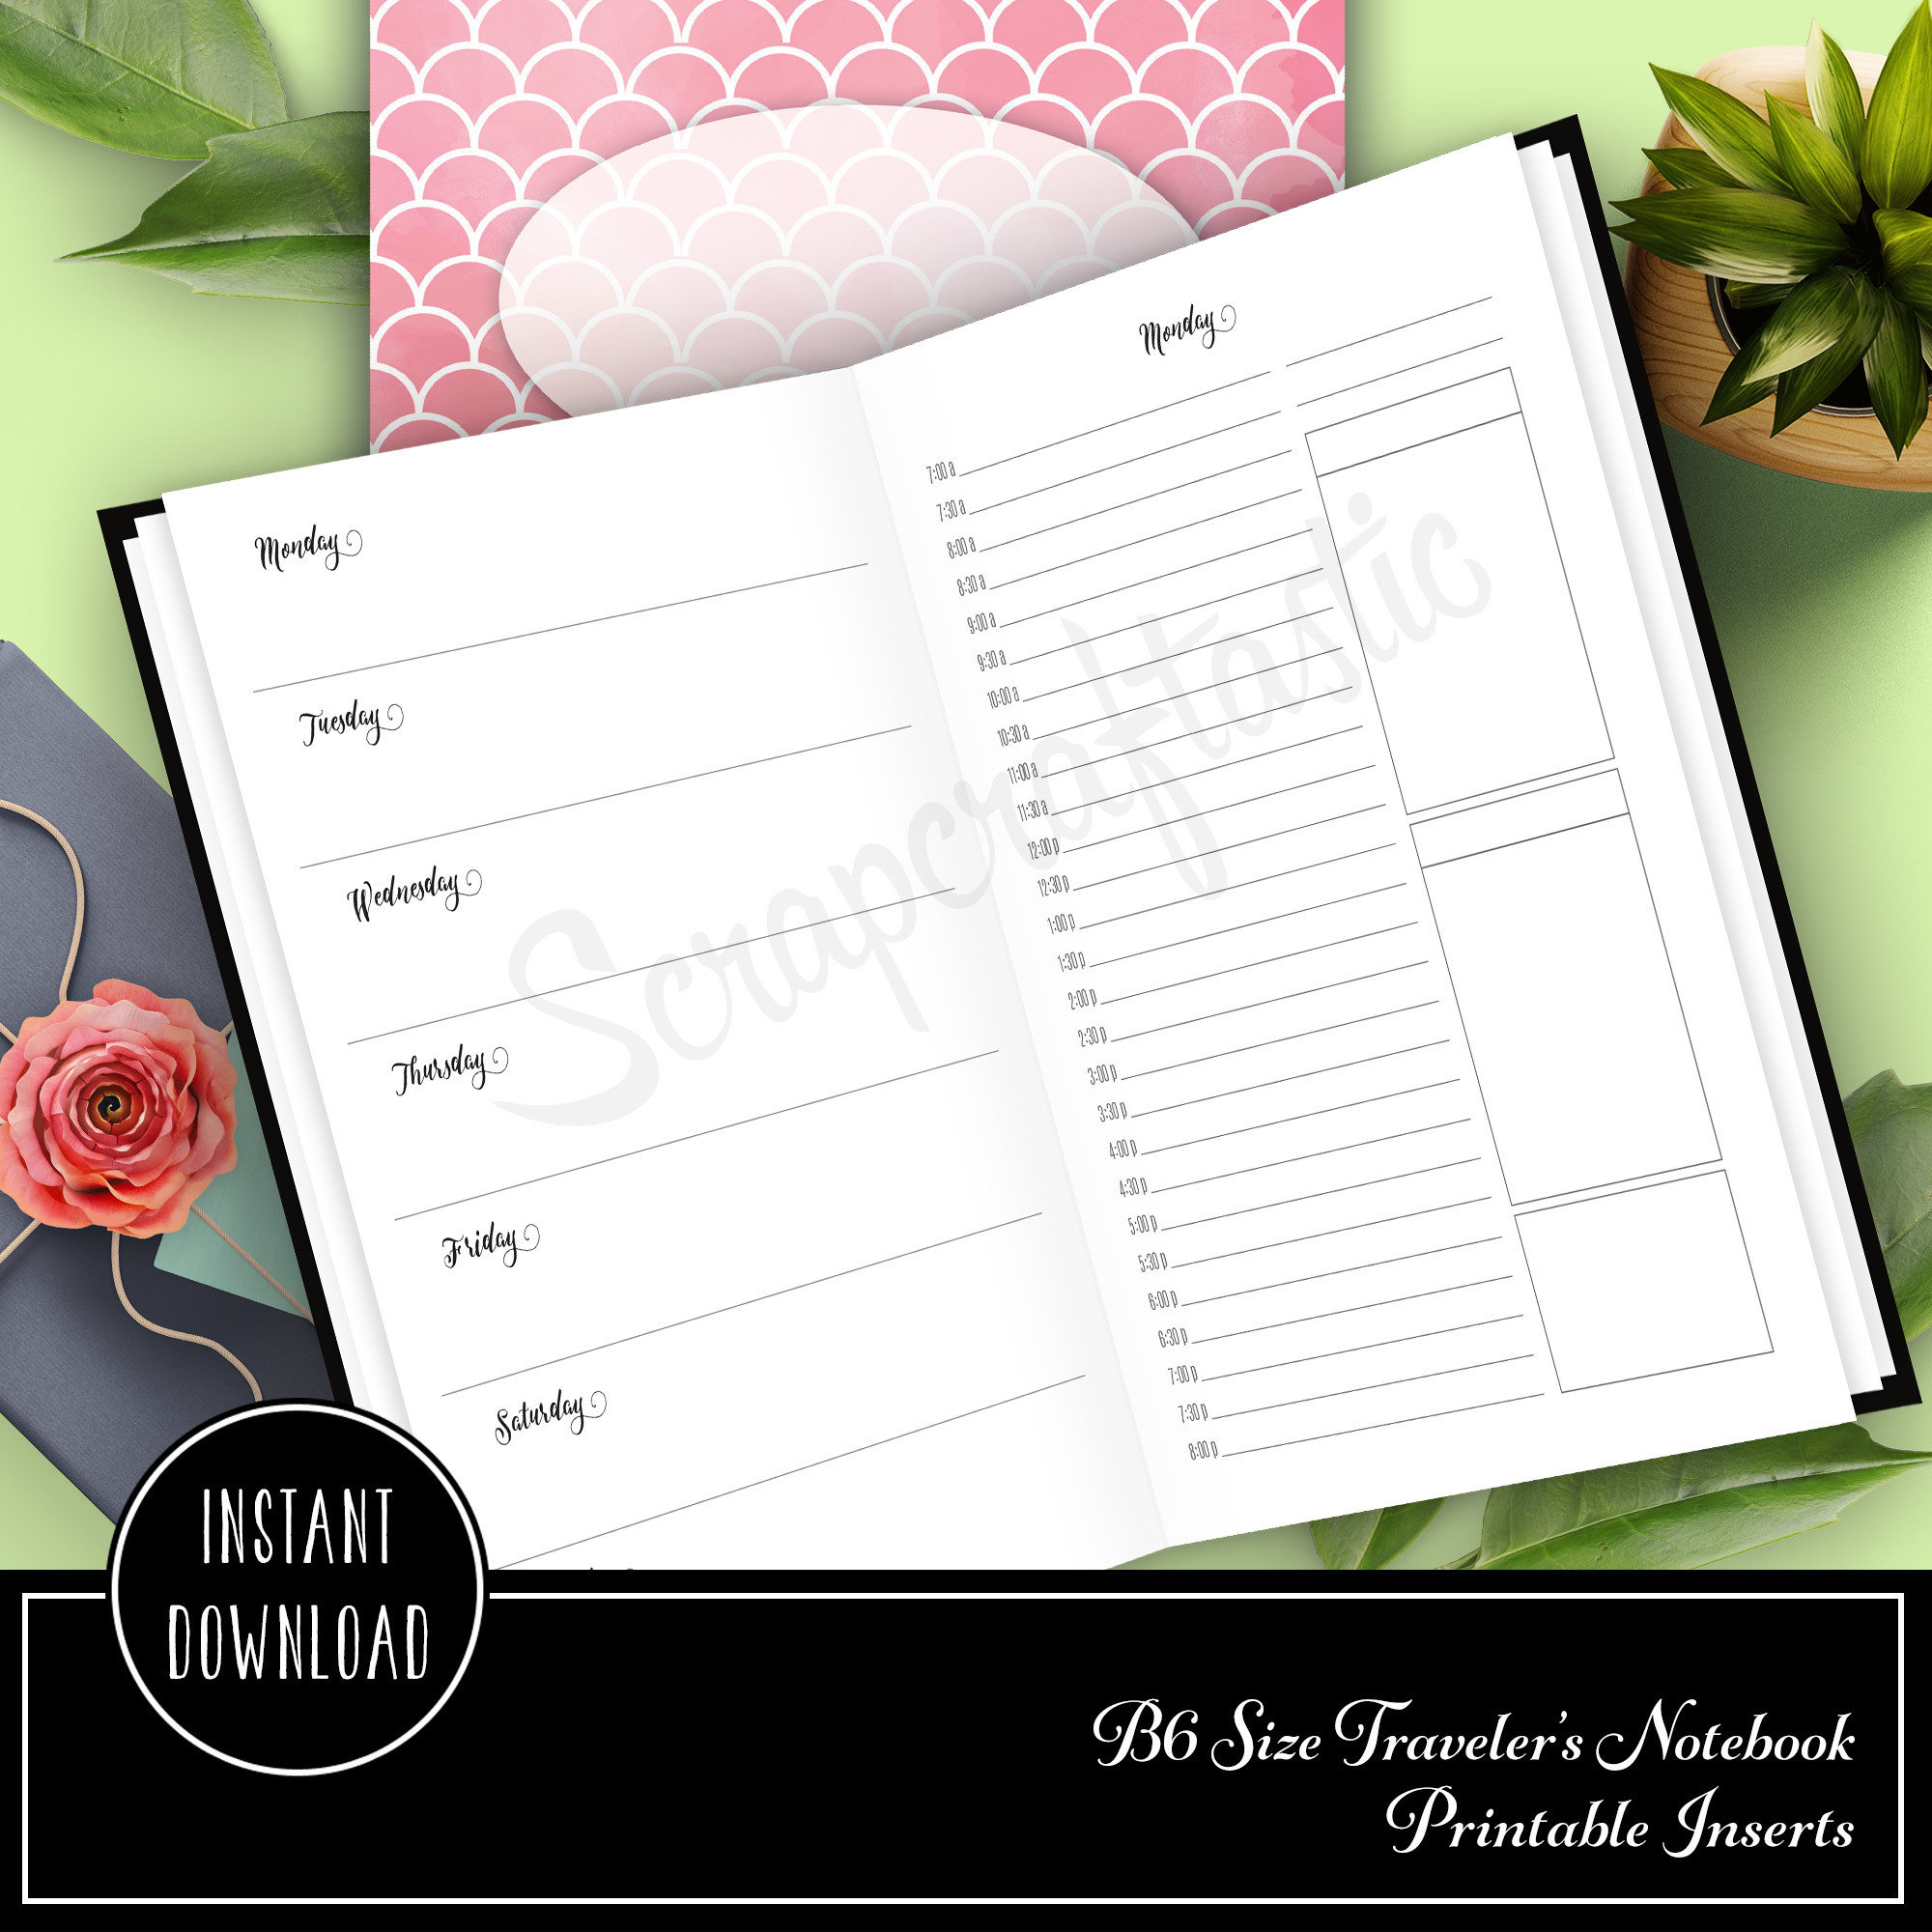 Full Month Notebook: Daily B6 Size with MO2P, WO1P Horizontal and DO1P Daily Schedule Pages Printable 50001